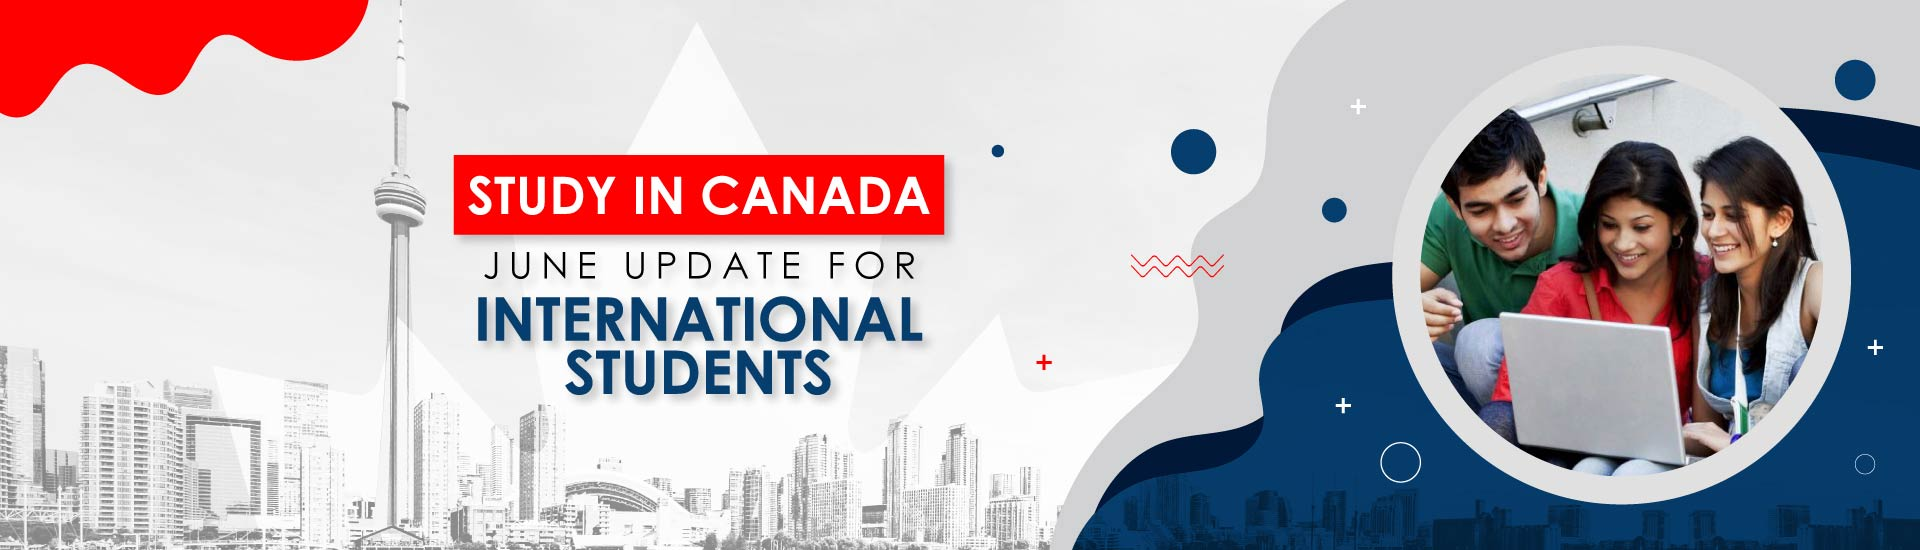 Study in Canada: June update for International Students